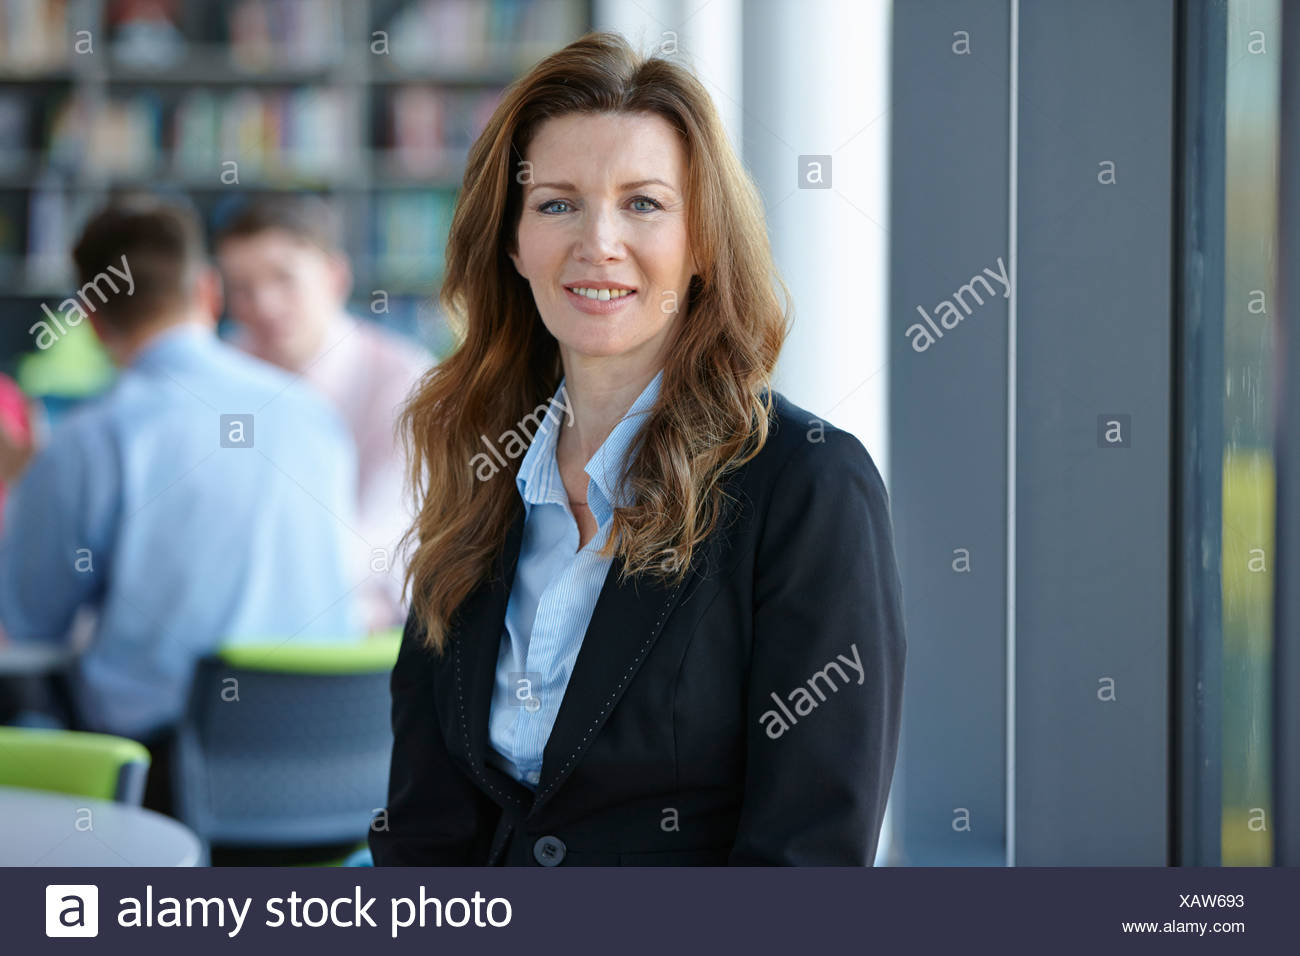 Portrait of mature woman with long hair Photo Stock